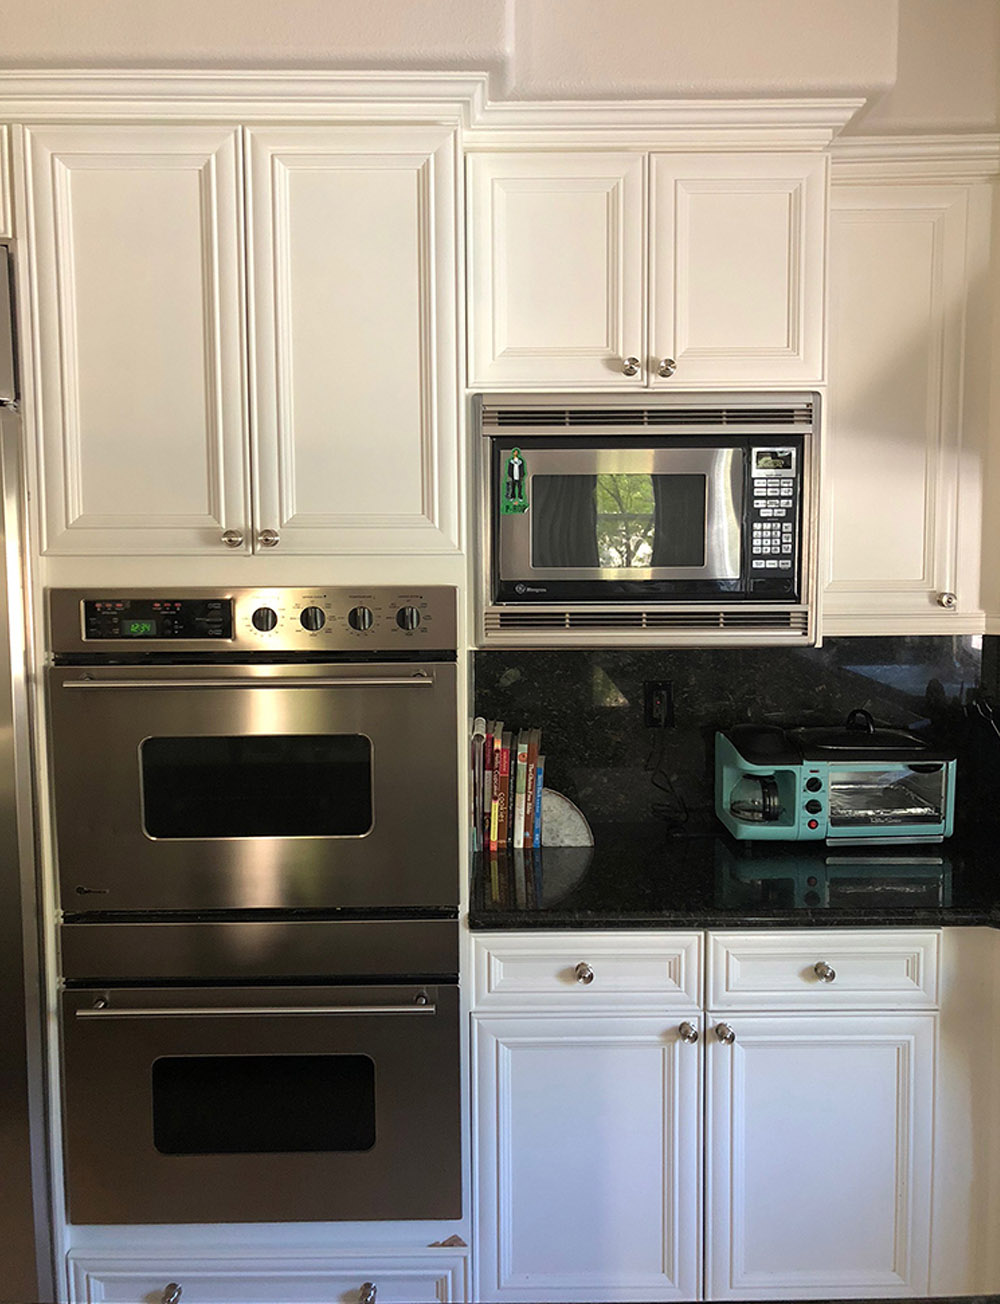 White kitchen cabinets, an over and a microwave.